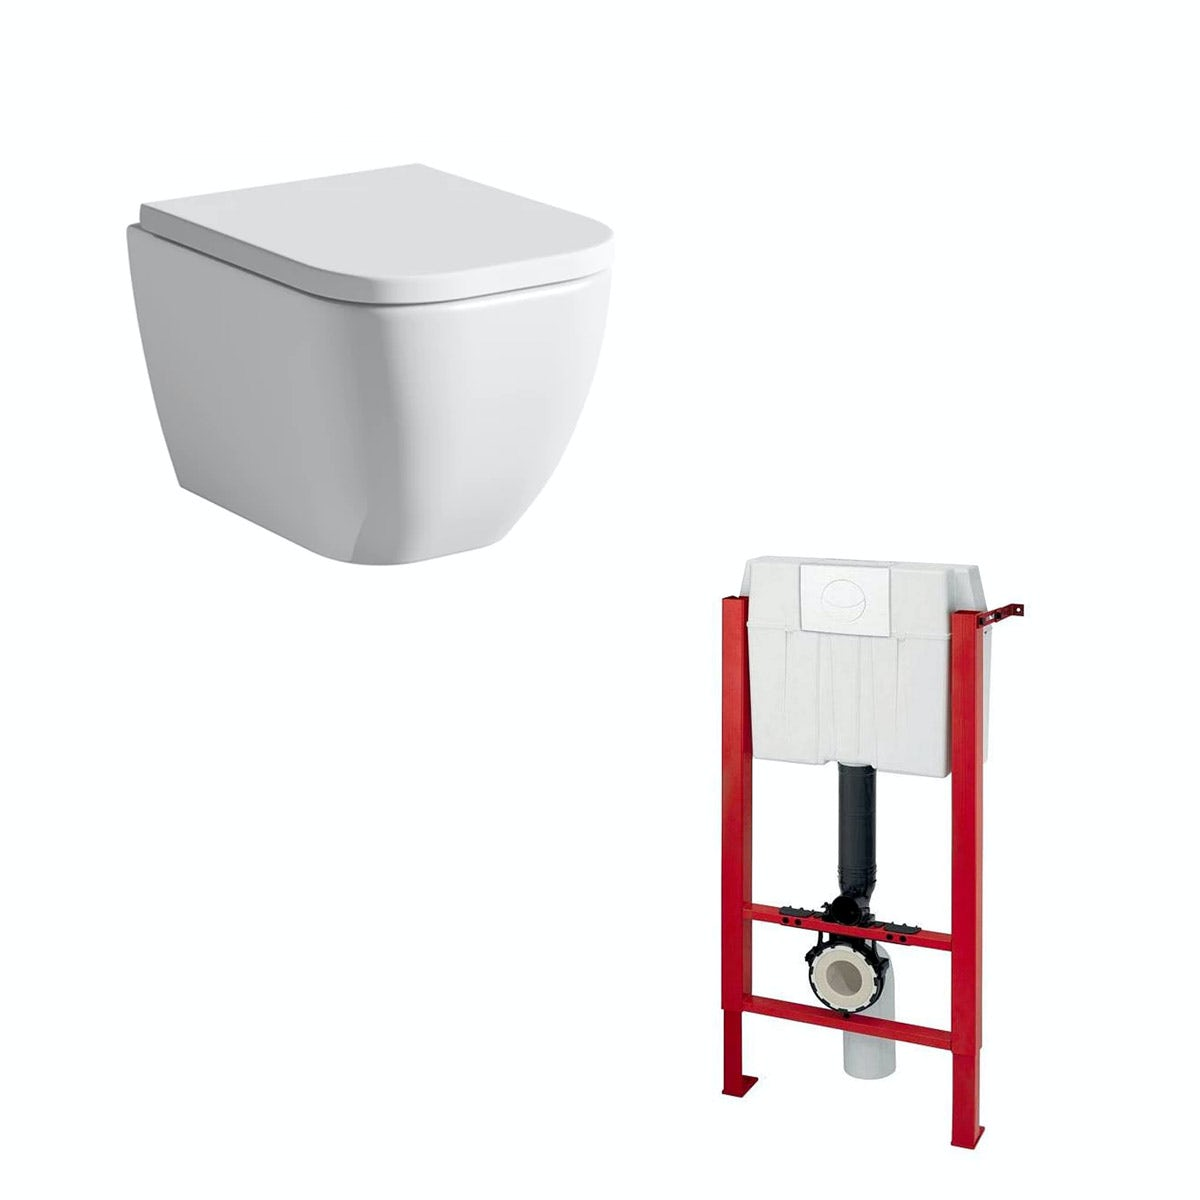 Mode Ellis wall hung toilet with soft close seat and wall mounting frame